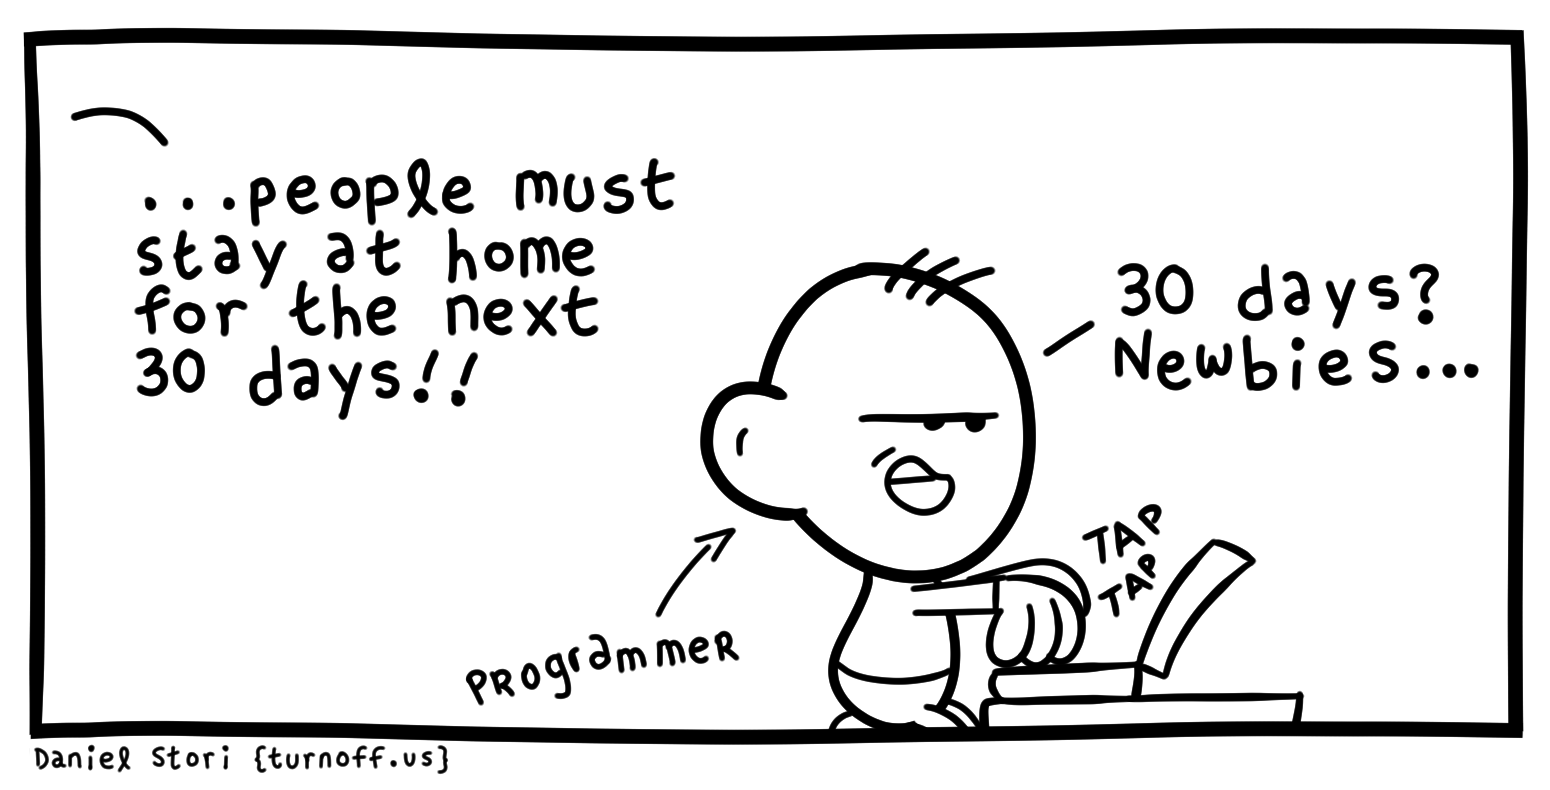 Covd-19 work from home comic